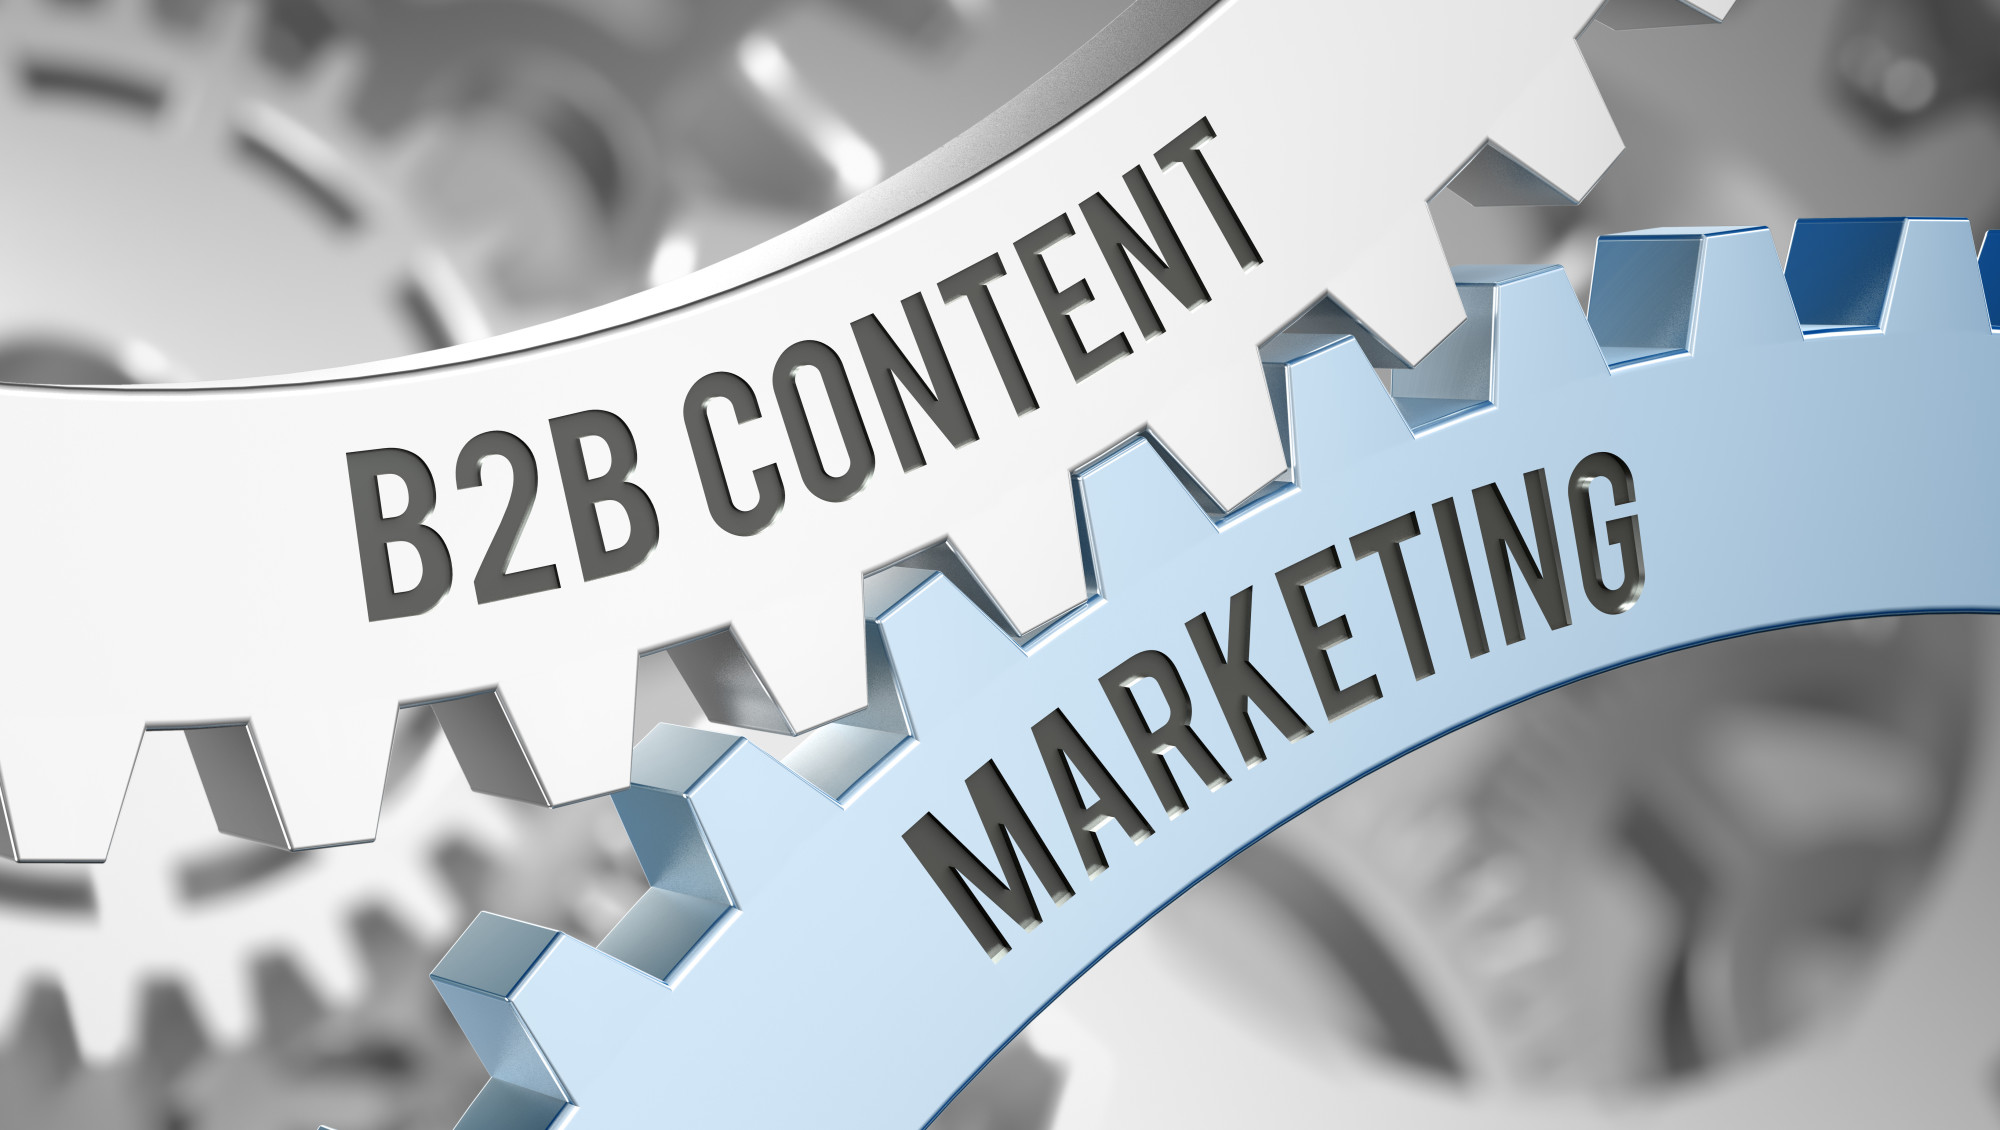 7 B2B Marketing Mistakes You're Likely Making Right Now